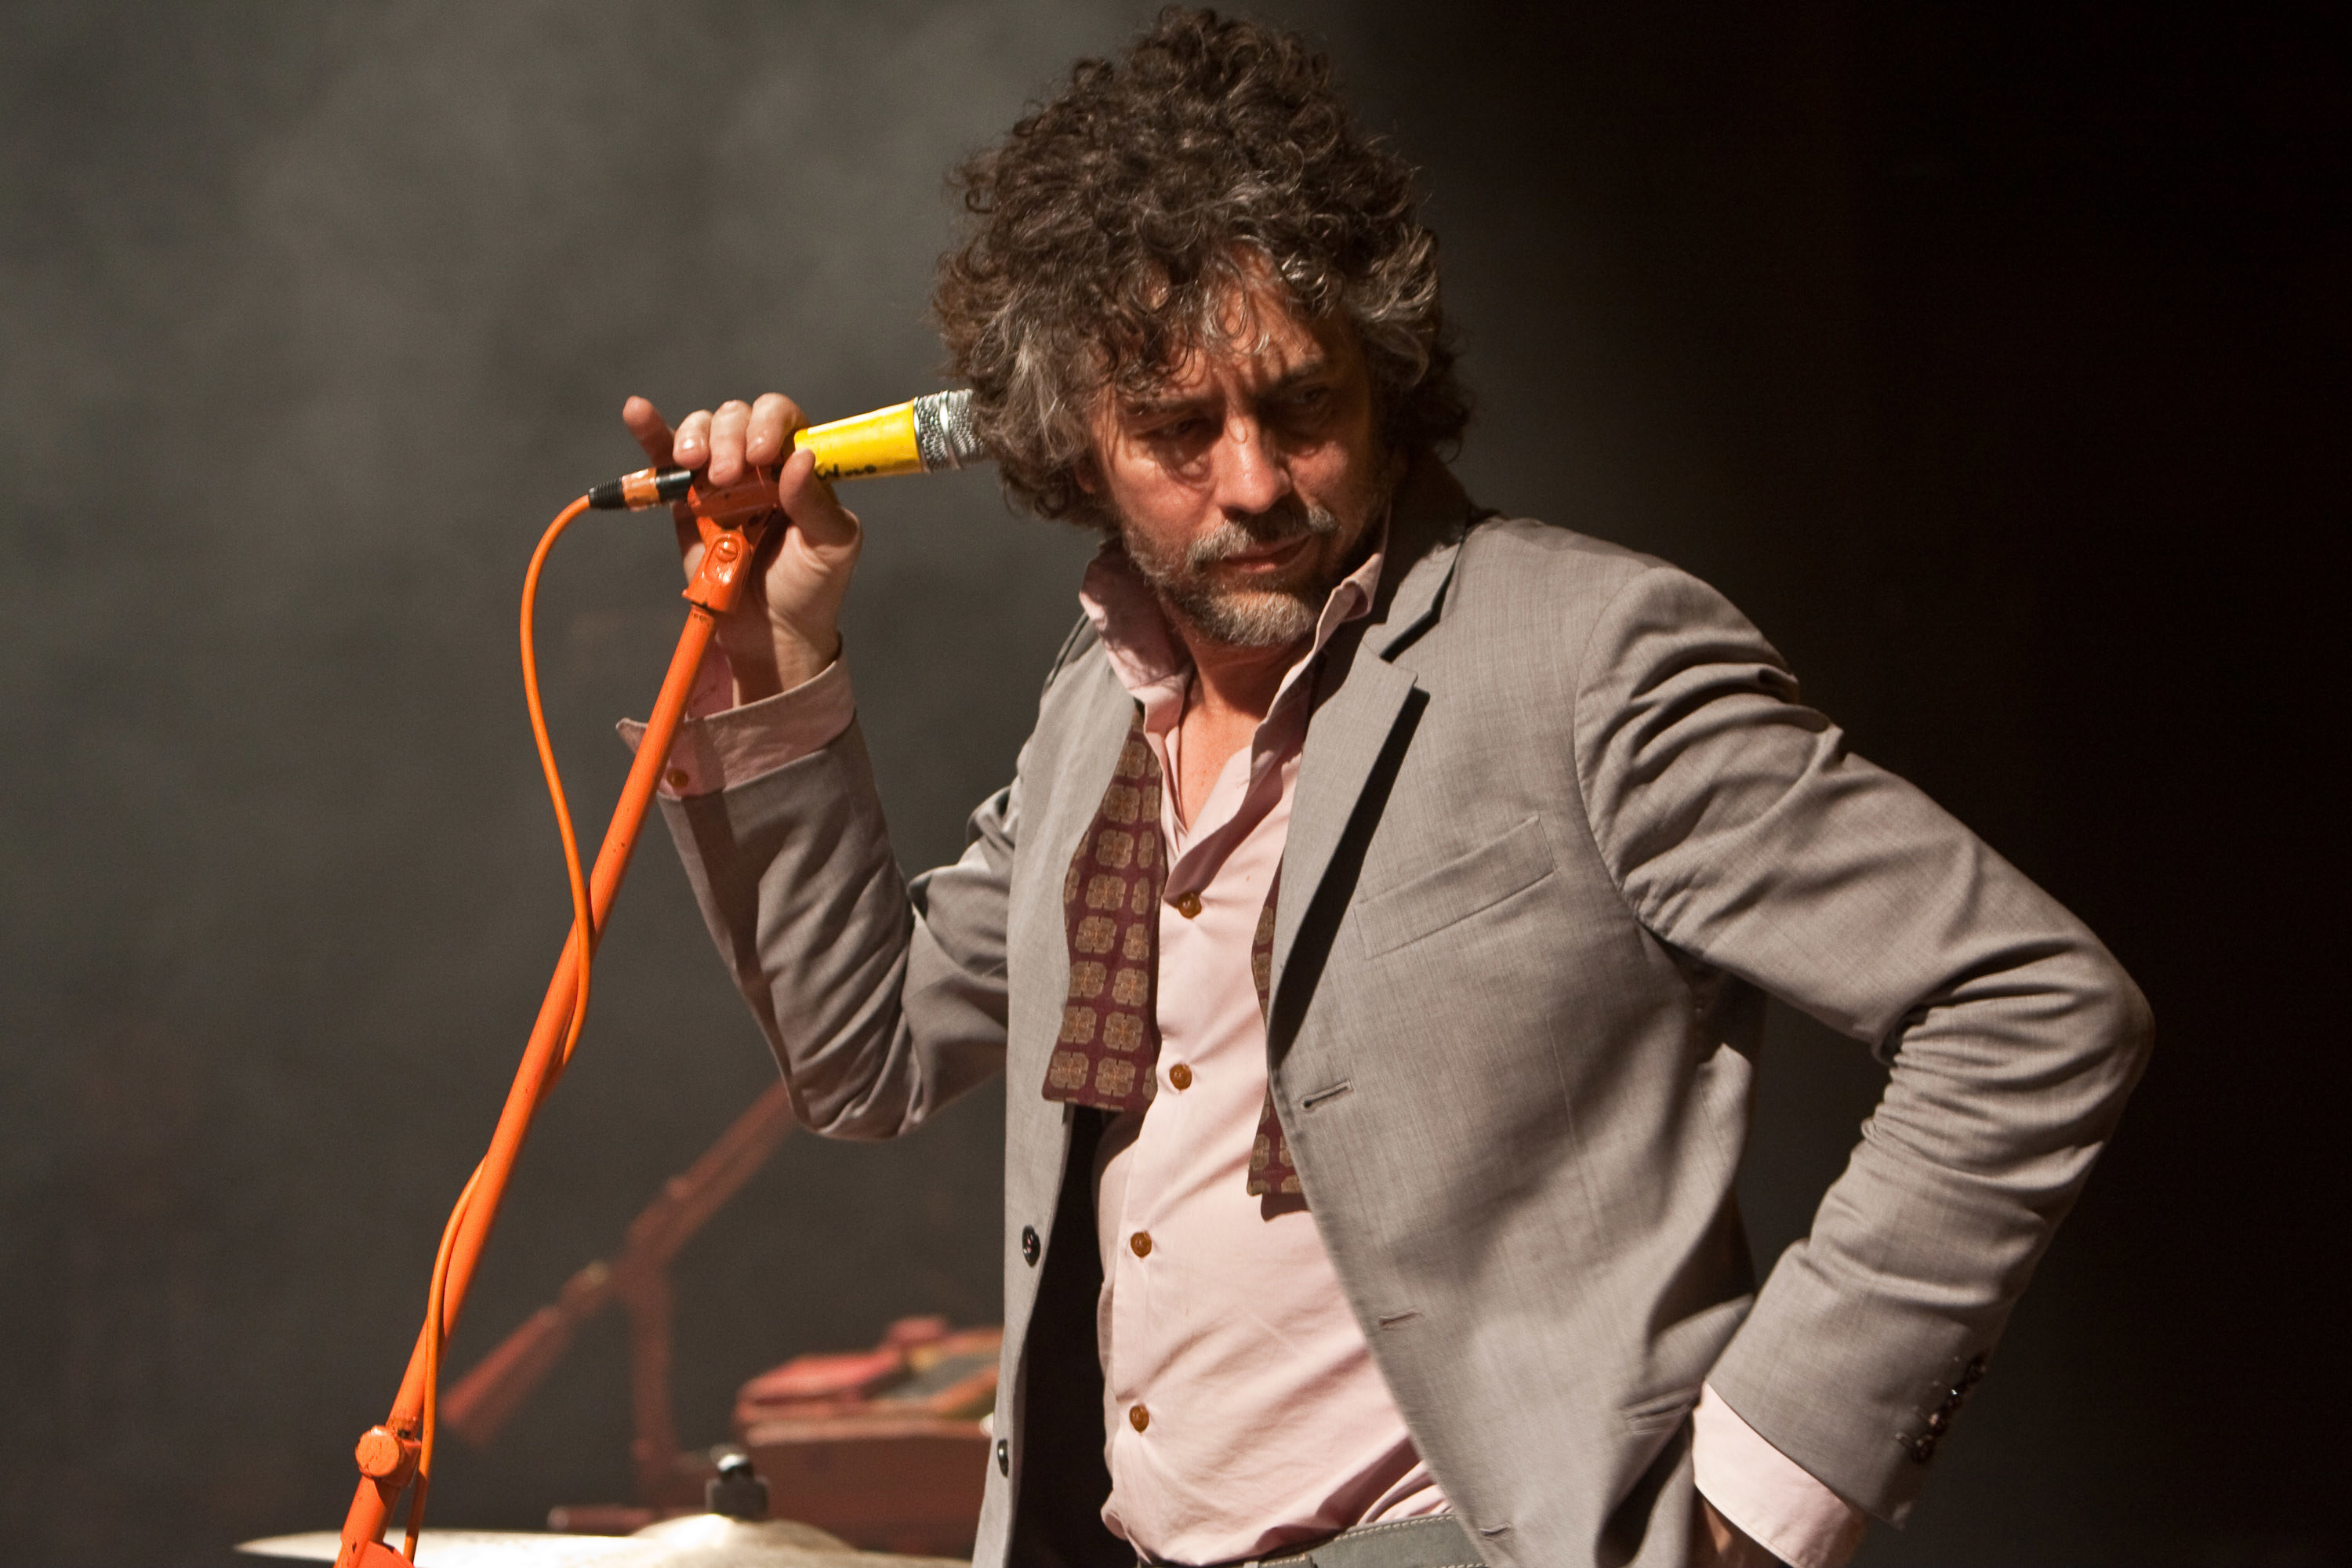 A photo of Wayne Coyne of the Flaming Lips on stage at Myspace Secret Show